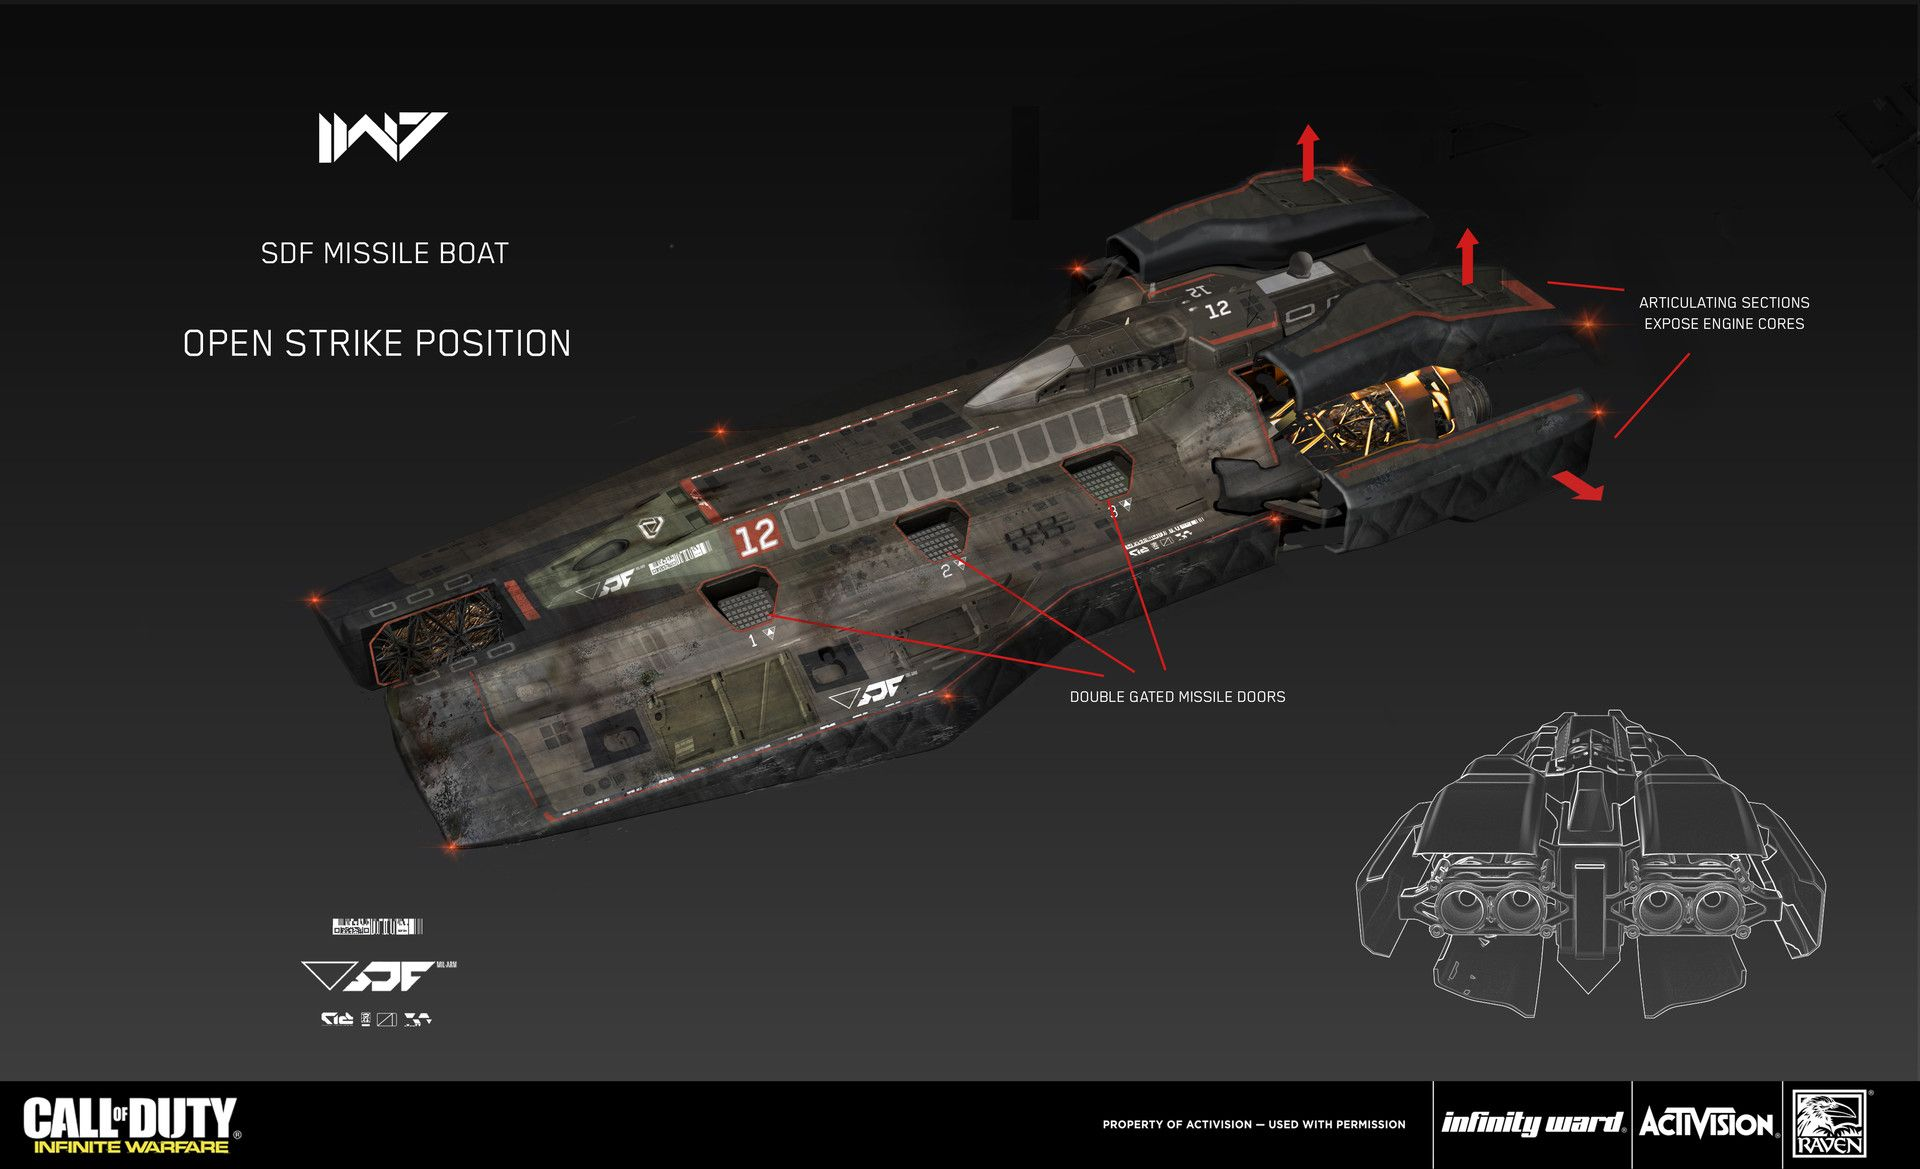 aircraft carrier schematics with 613826624182023393 on Cv 002 Catapult together with Poseidon Class 152104491 likewise USS Texas 1942 458777778 together with Saabsaratoga besides Virgin Galactic Resumes Spaceshiptwo Testing.